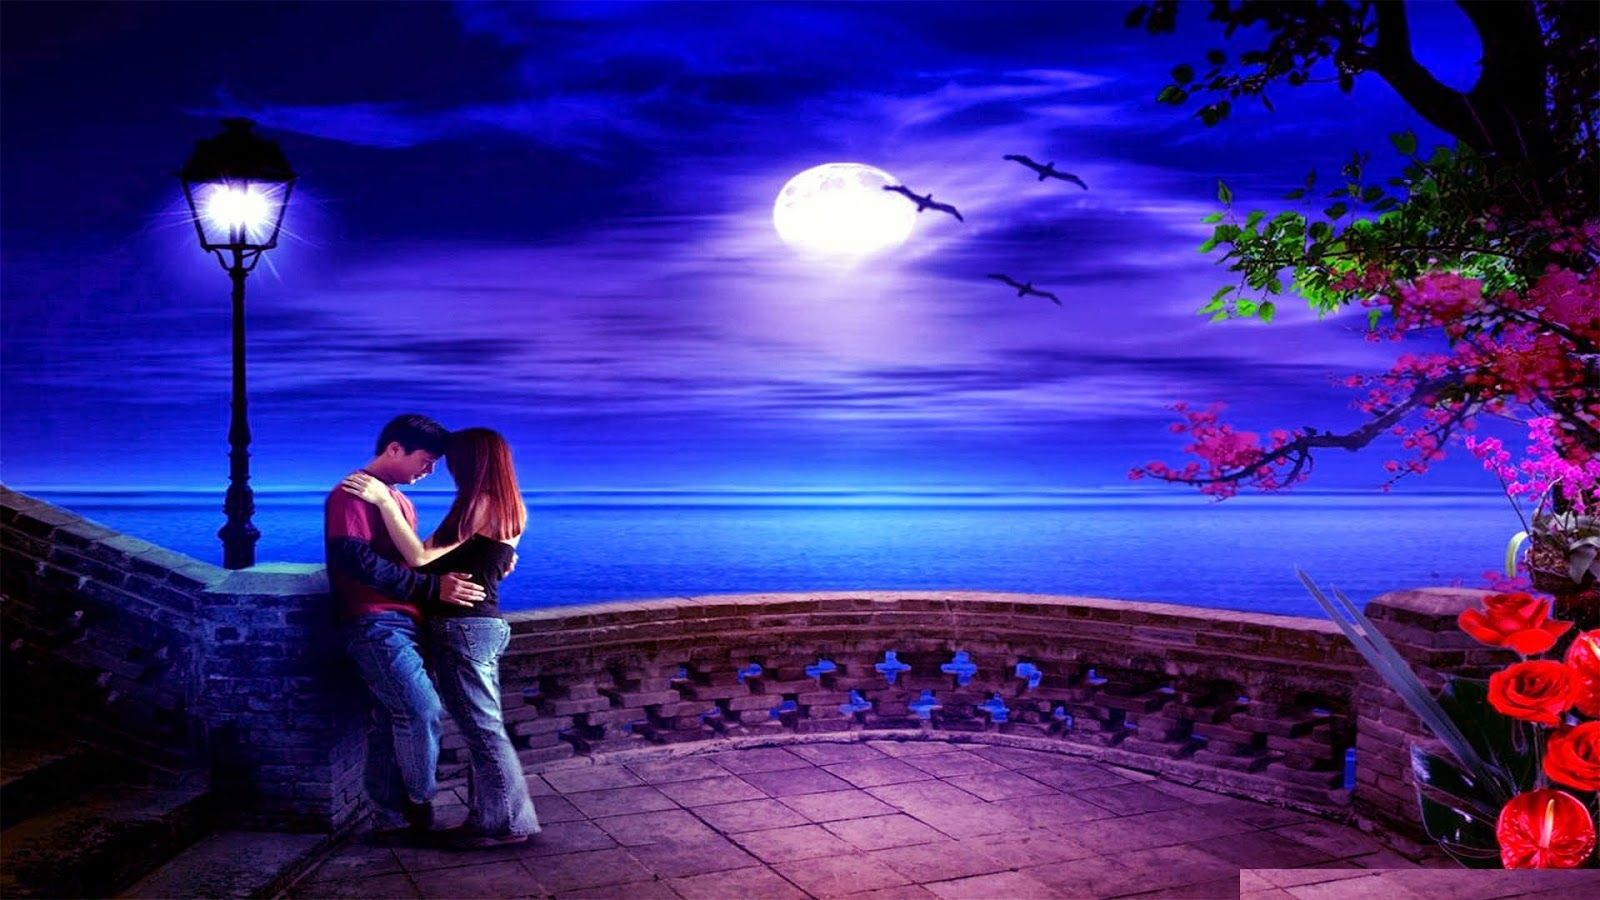 Romantic Hd Wallpapers Backgrounds Wallpaper Picture Pinterest